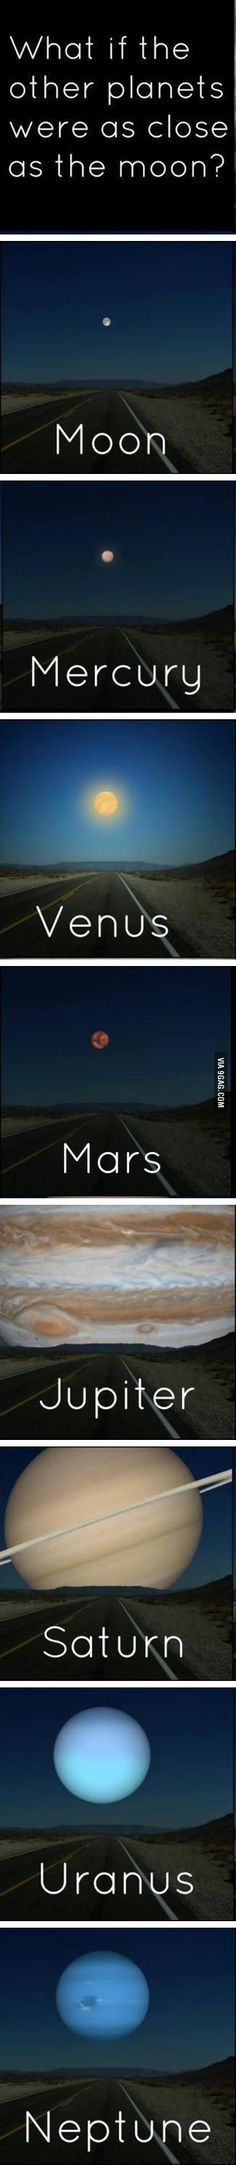 What if the other planets were as close as the moon -- so cool!